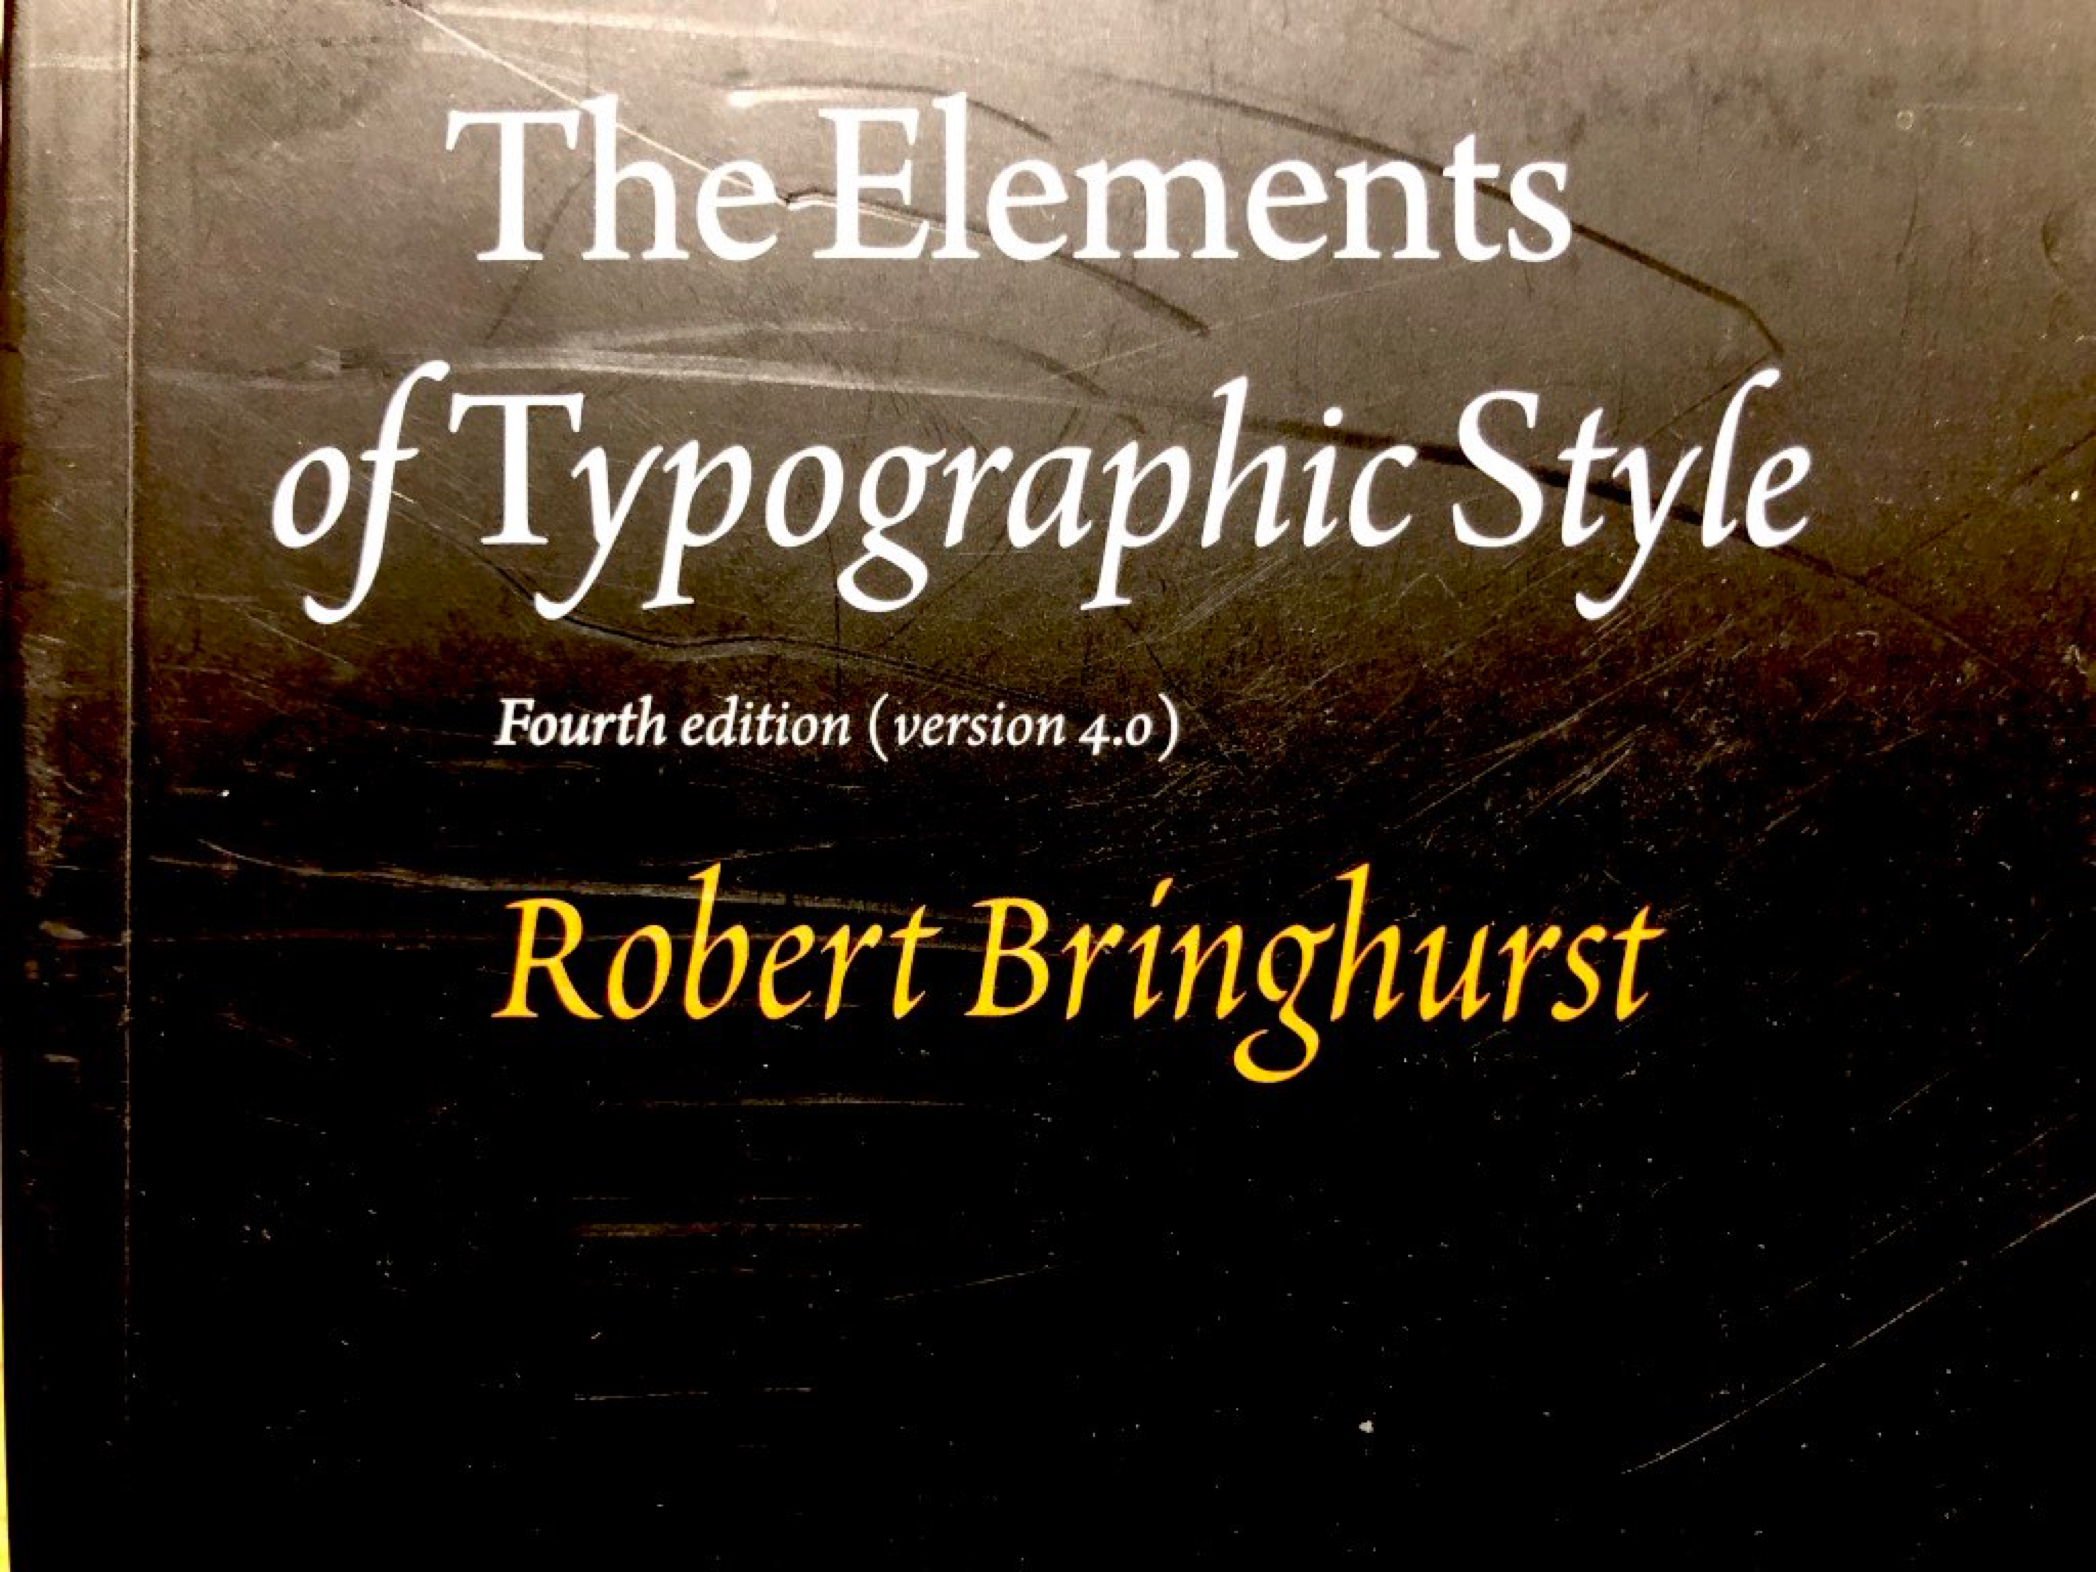 Variable Fonts and Our New Typography